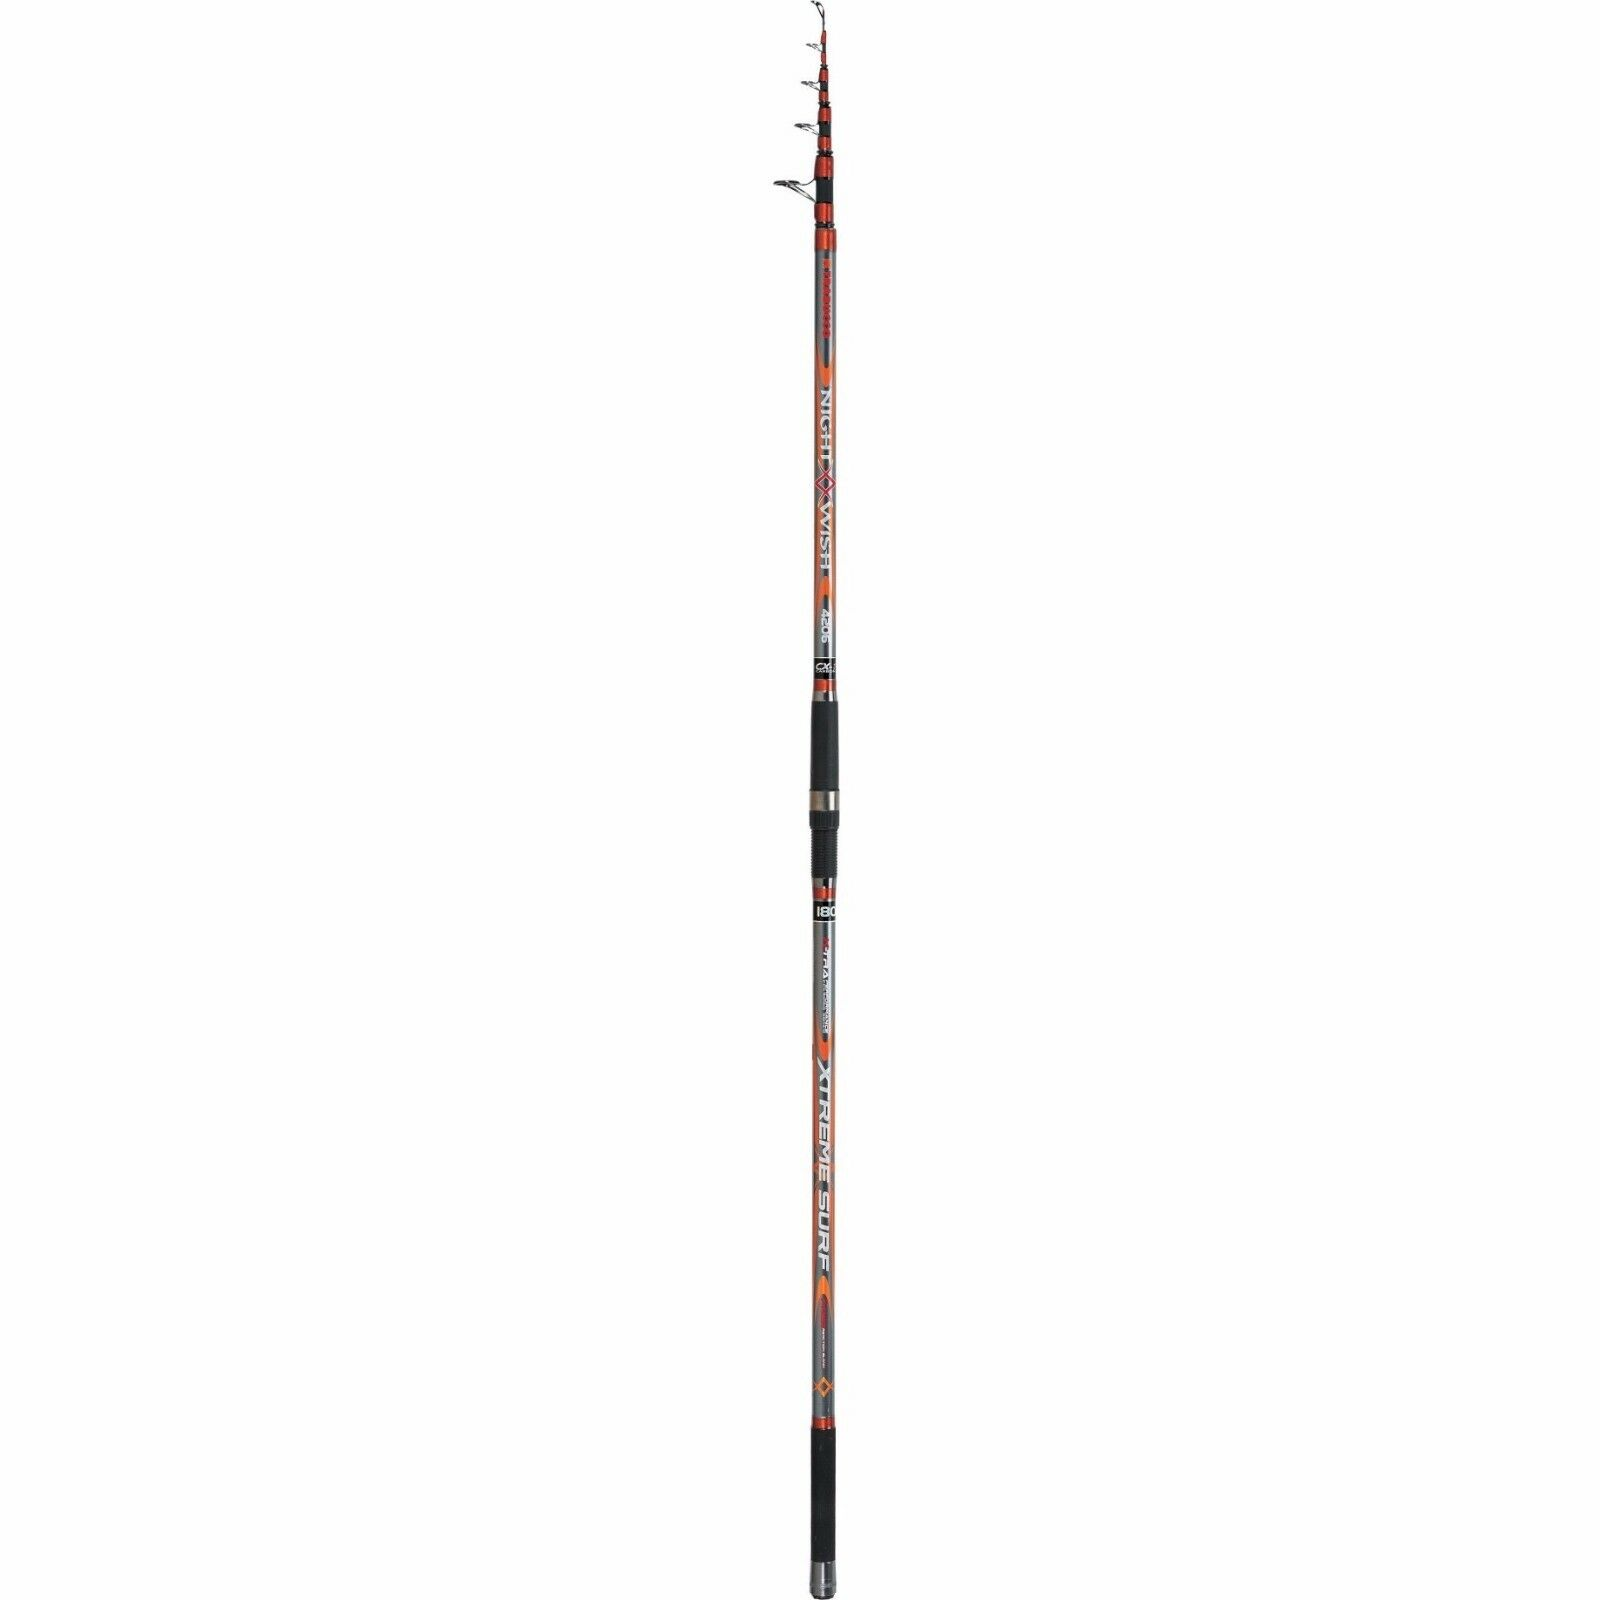 Canna da pesca Trabucco Night Wish Xtreme Surf mt 4.20